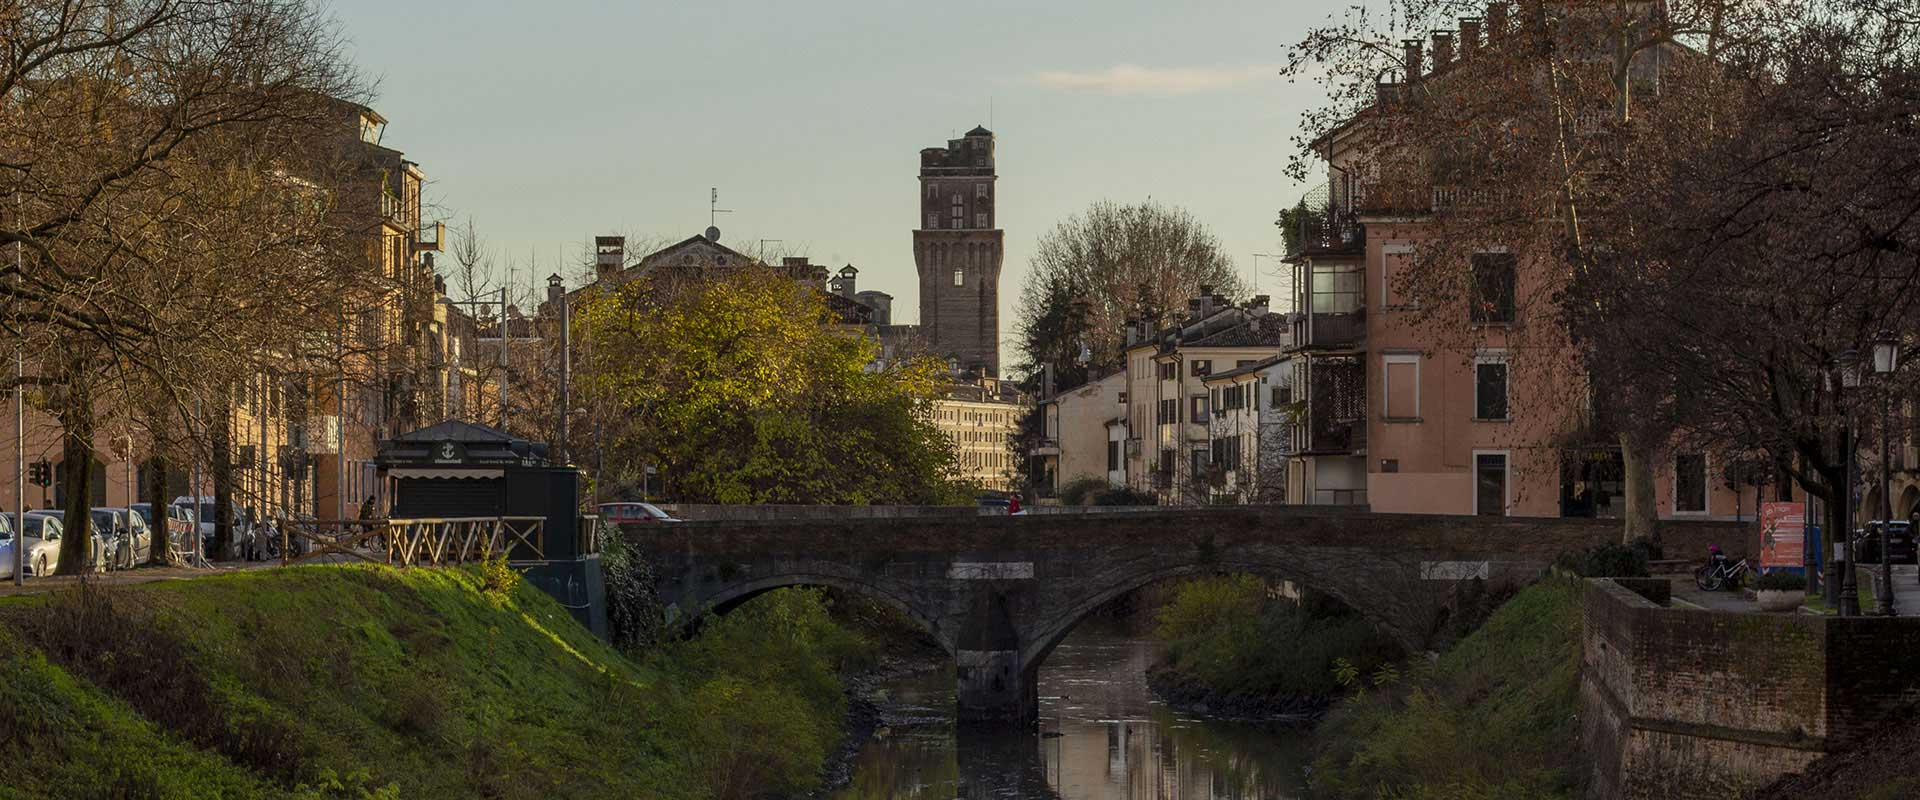 Padova where Giulio Simeone Design Studio is based